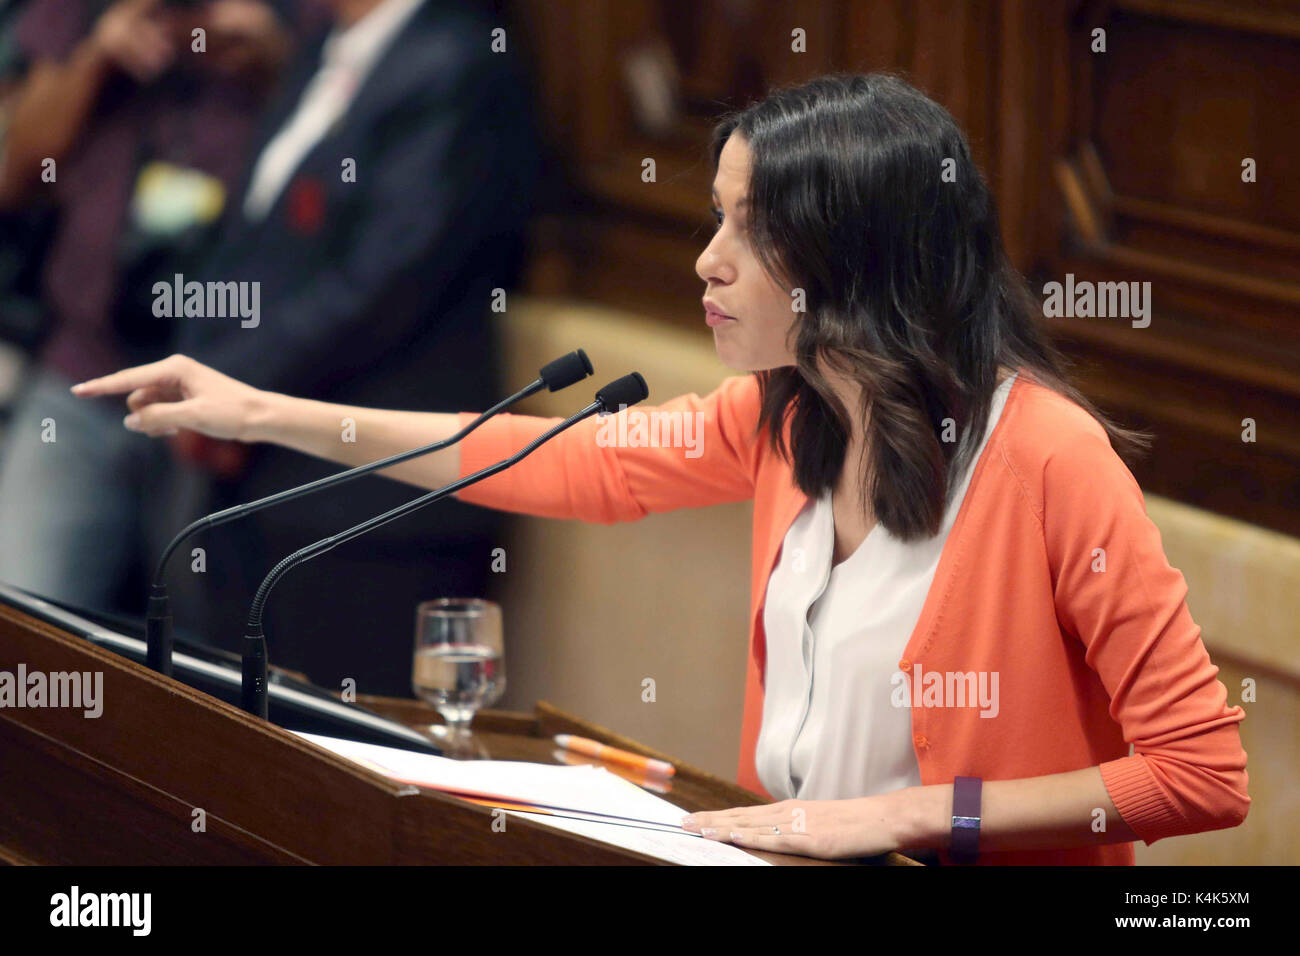 President of the parliamentary group 'Ciudadanos' Ines Arrimadas, defends the position of her party regarding - Stock Image